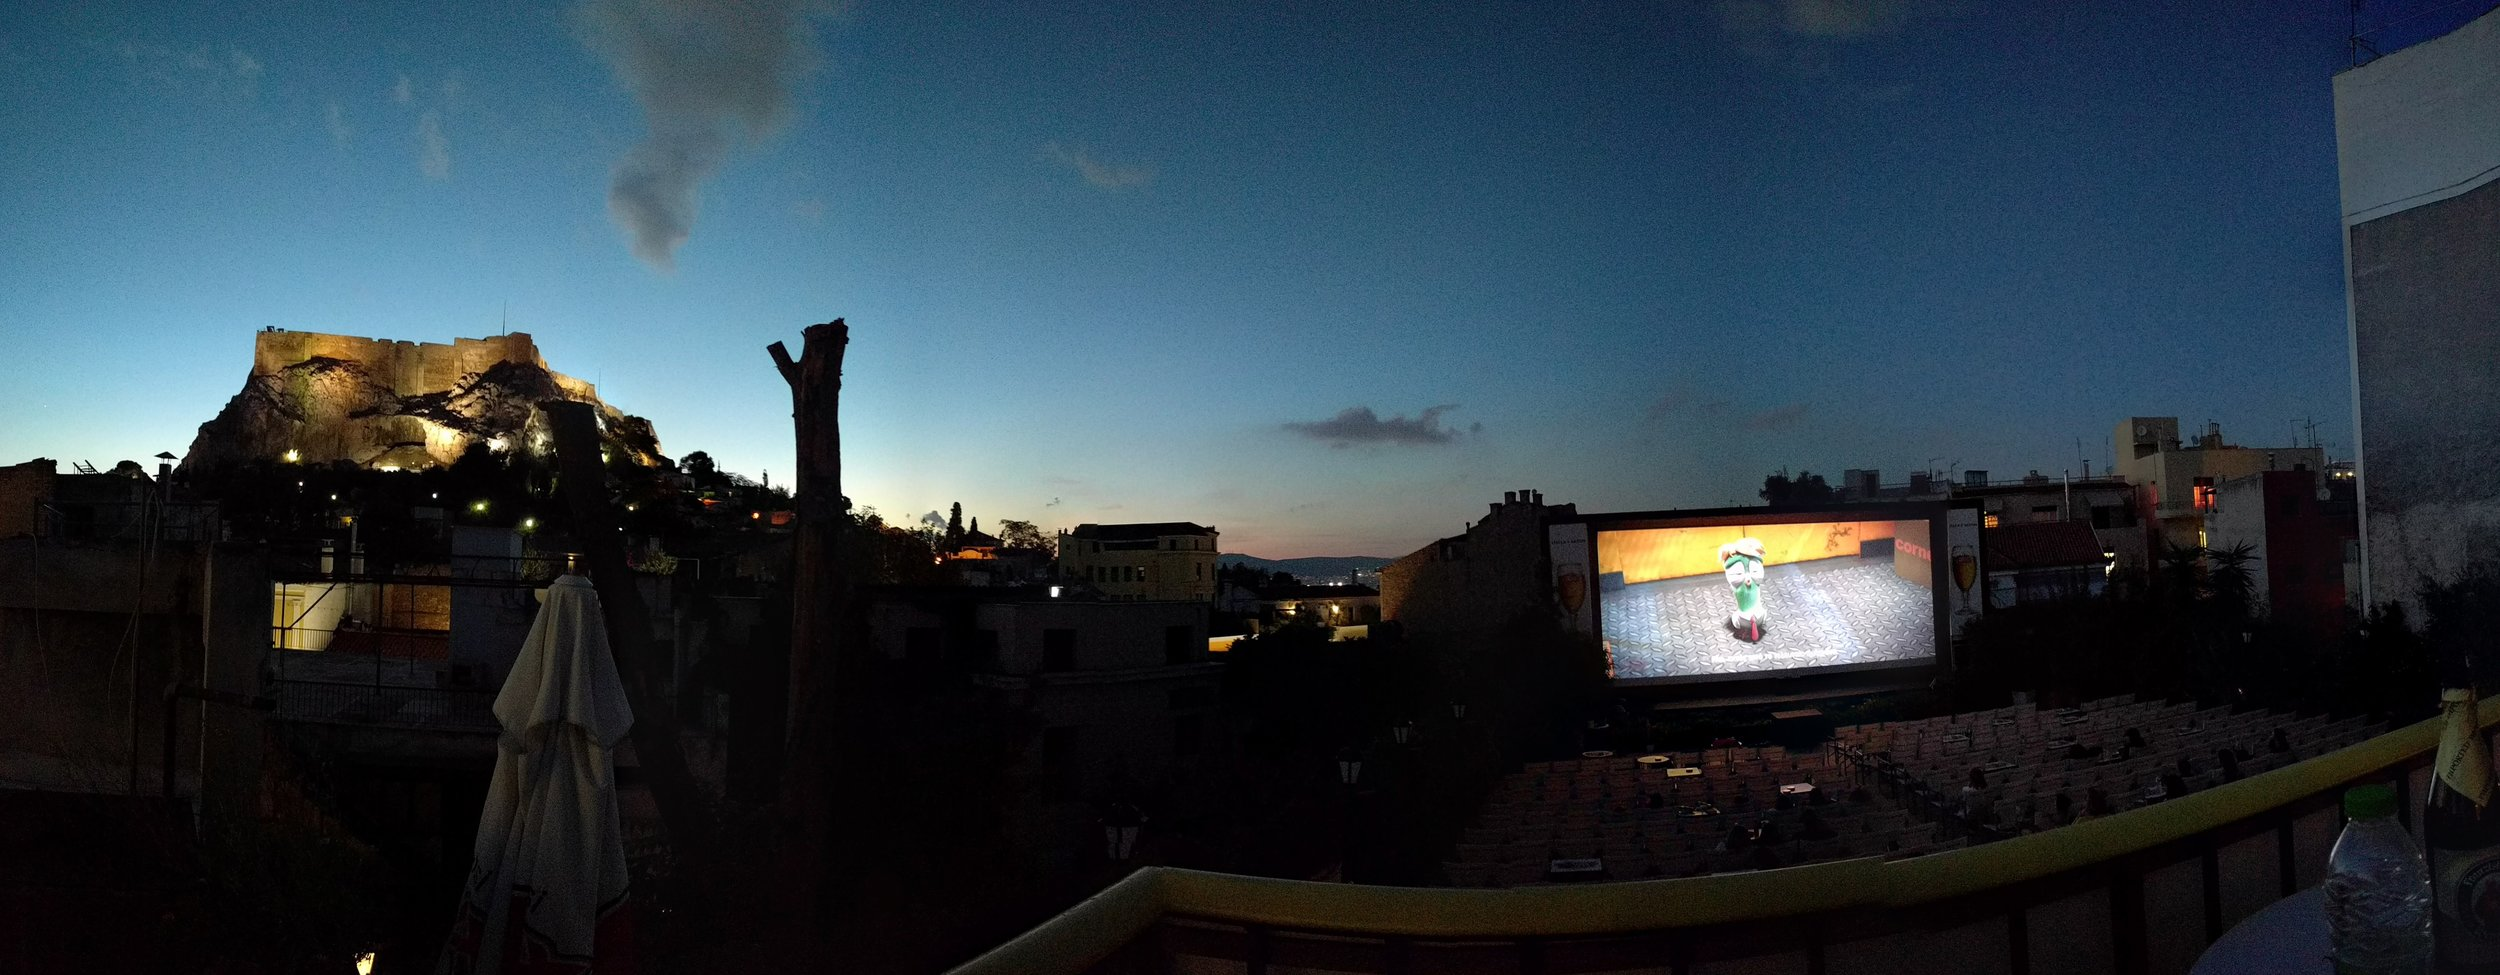 One evening we went to a rooftop movie theater! The view of the Acropolis, or the movie....which was the real show?